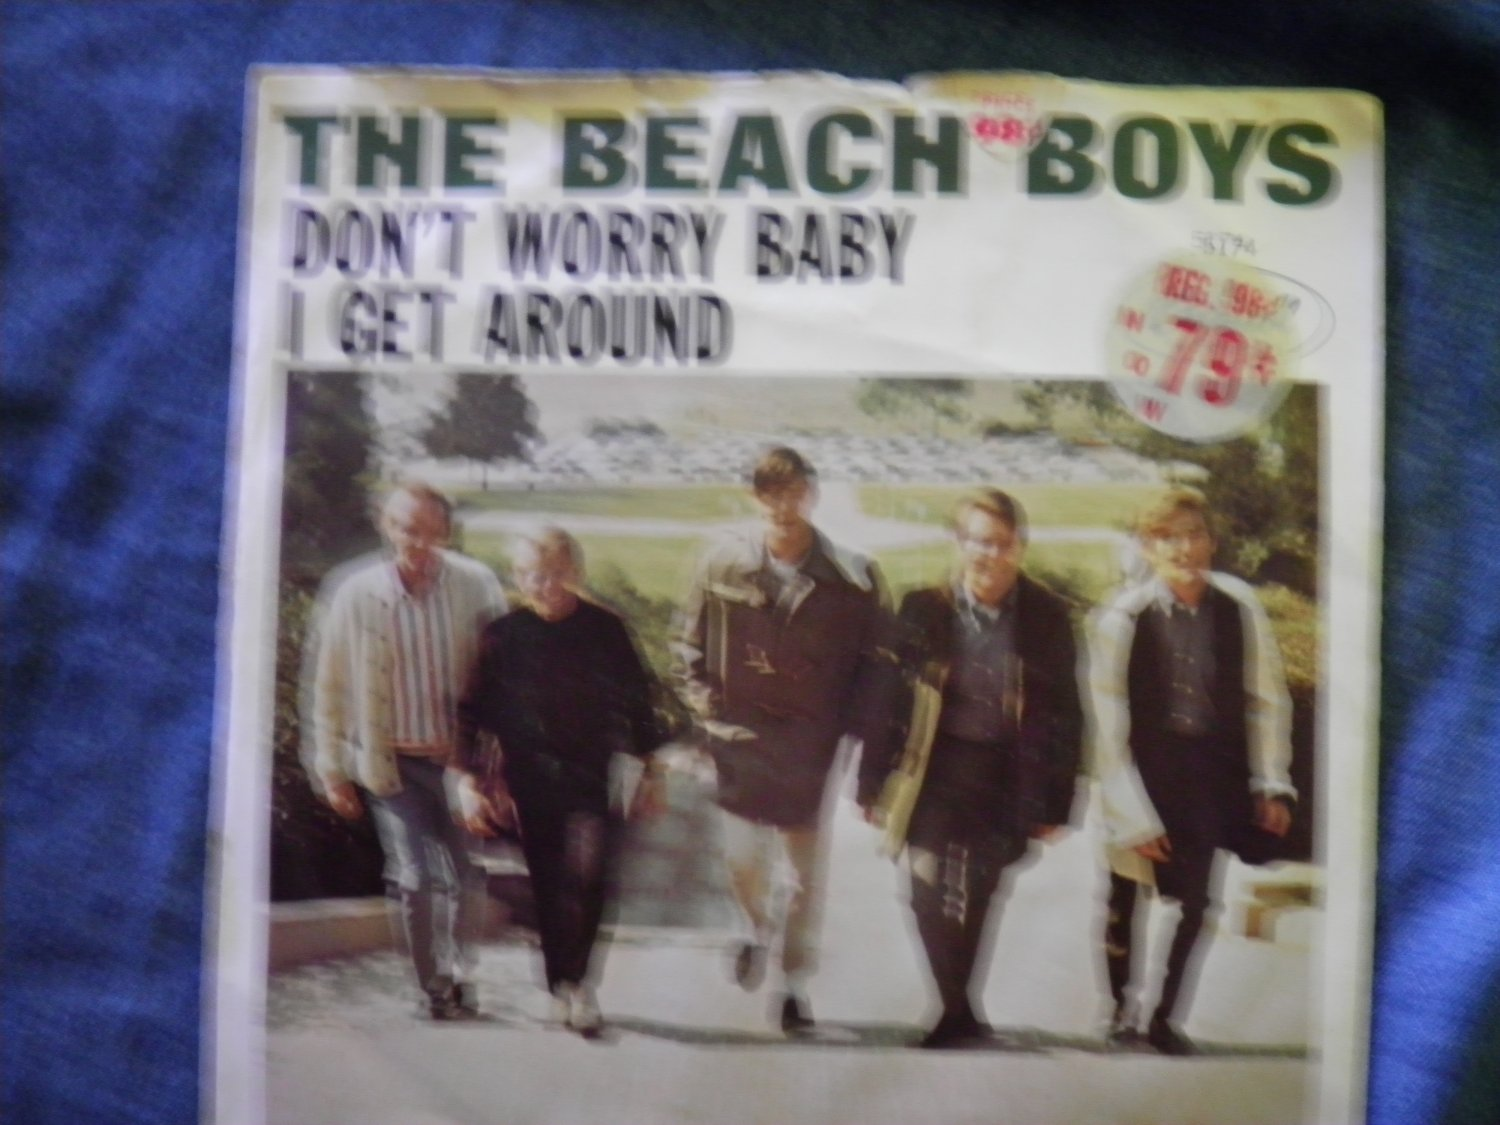 45 THE BEACH BOYS don't worry baby b/w I get around vinyl record W/PICTURE SLEEVE